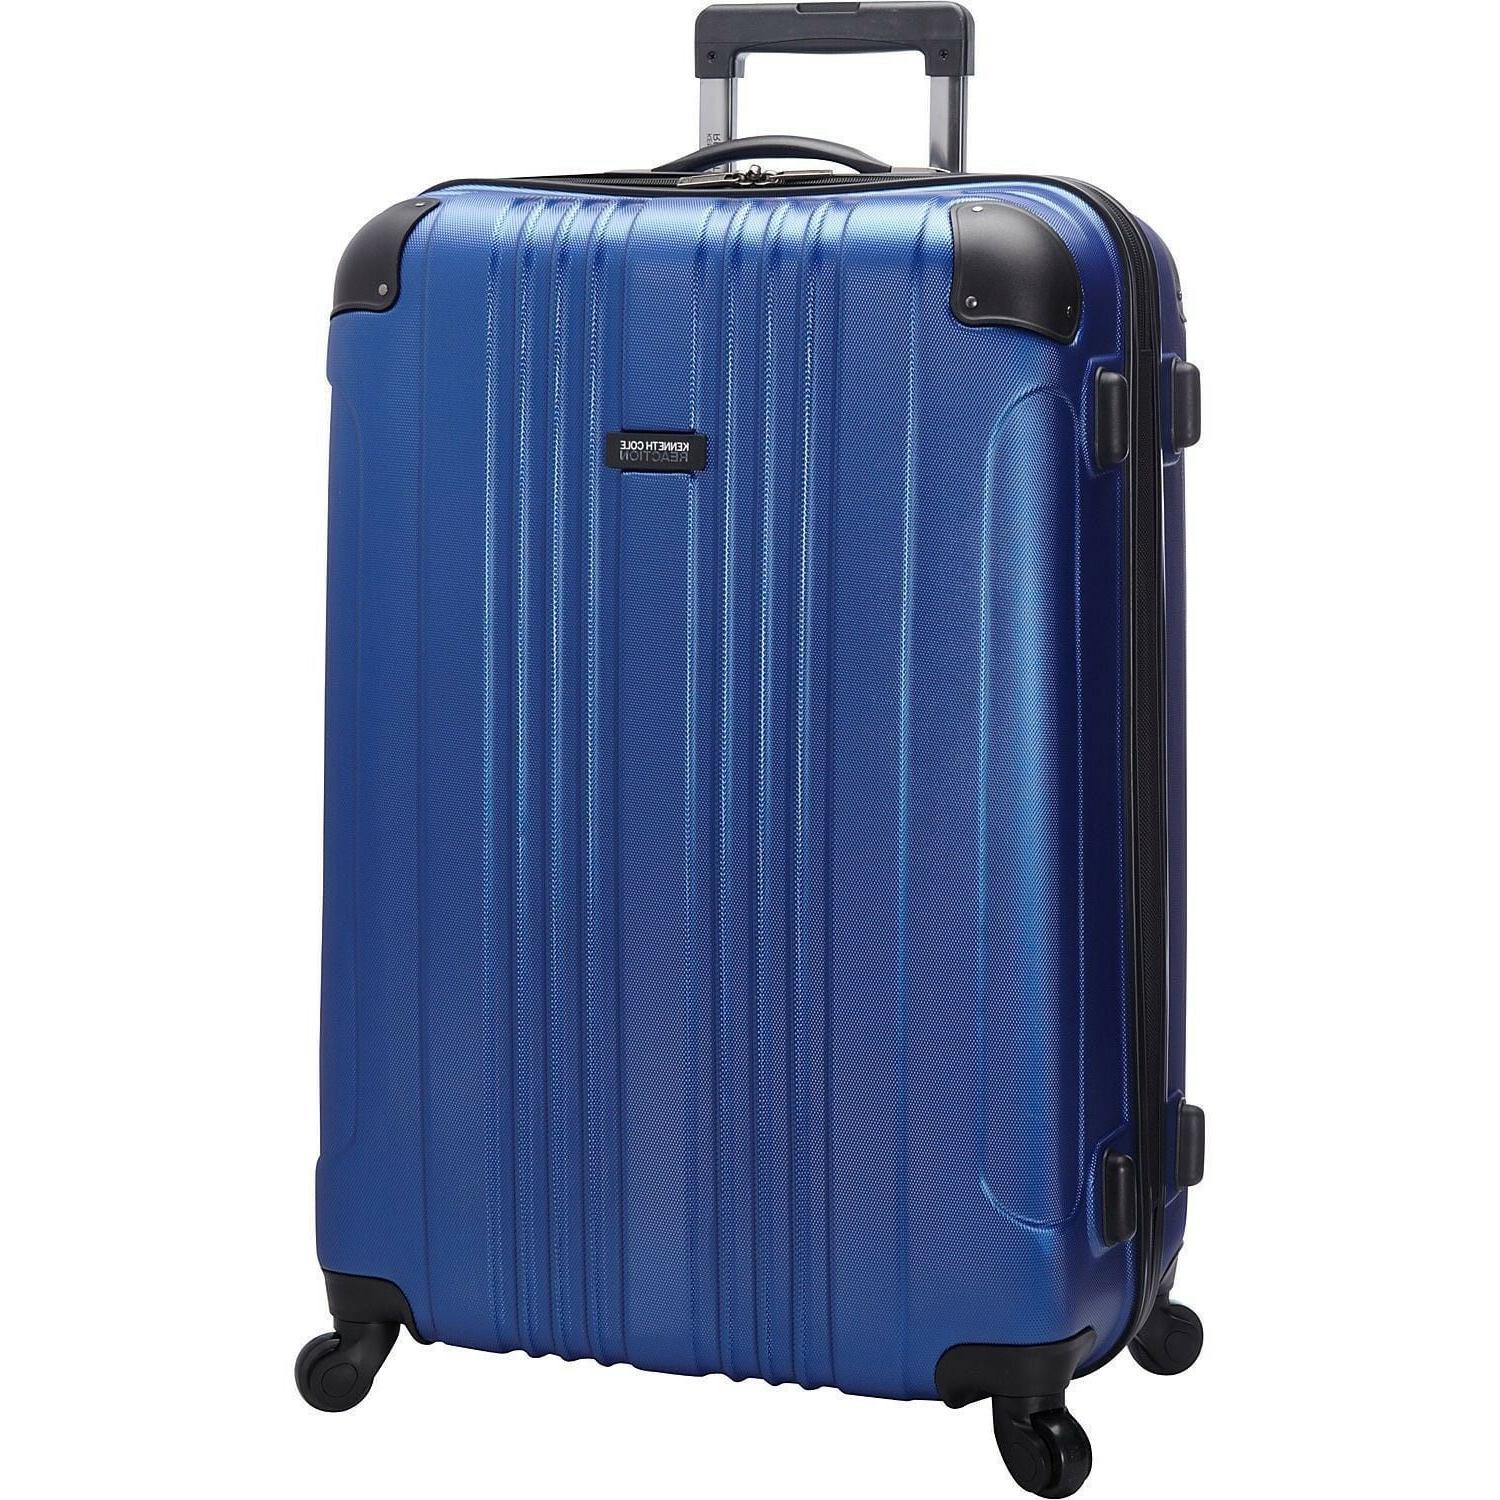 Kenneth Cole Reaction of Spinner Luggage